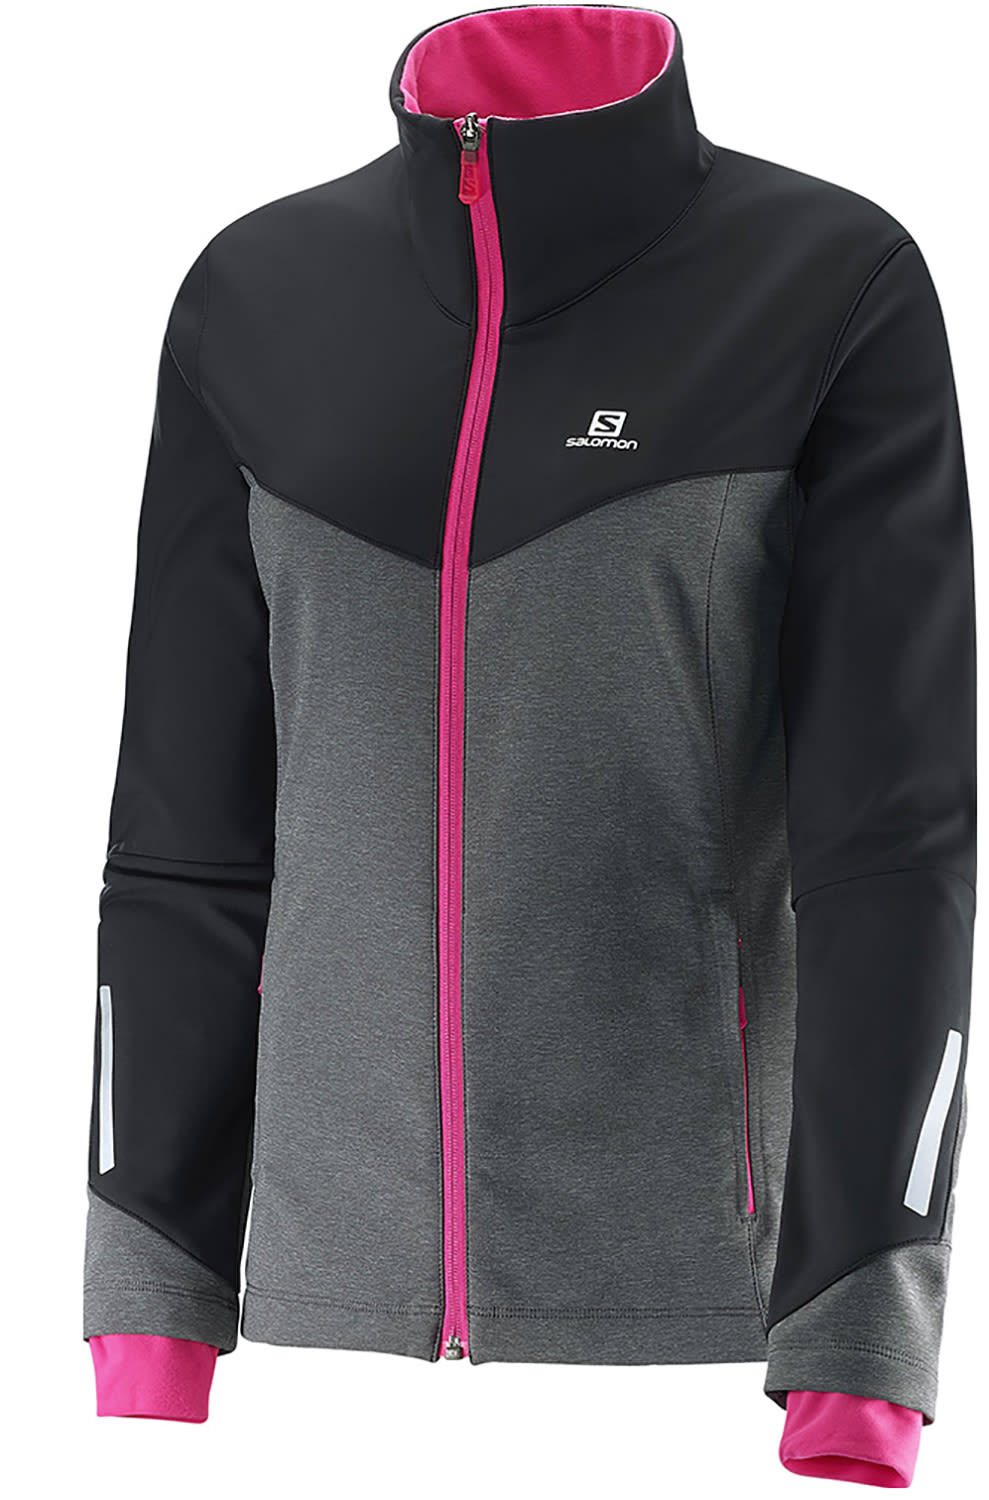 Womens Winter Running Jacket